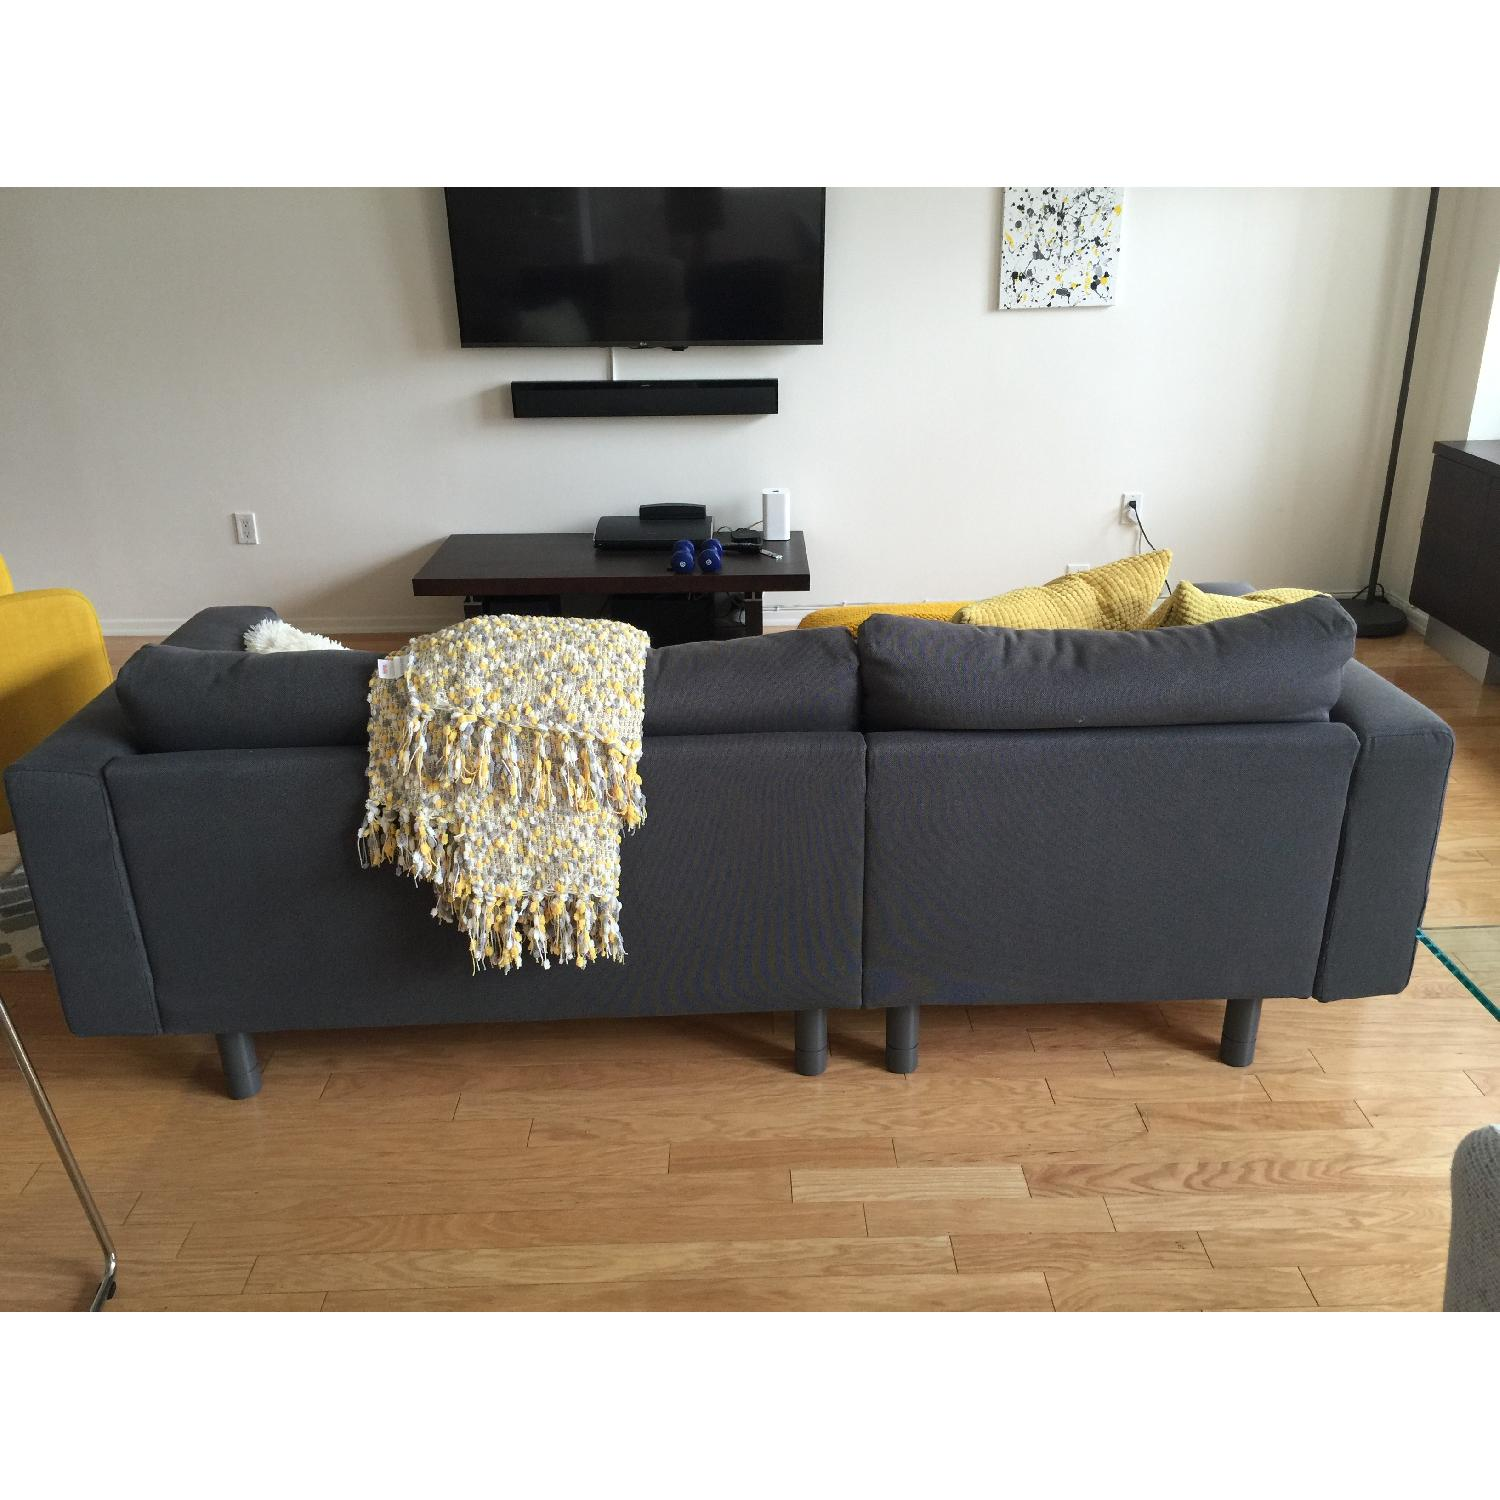 Ikea Sectional Couch - image-4